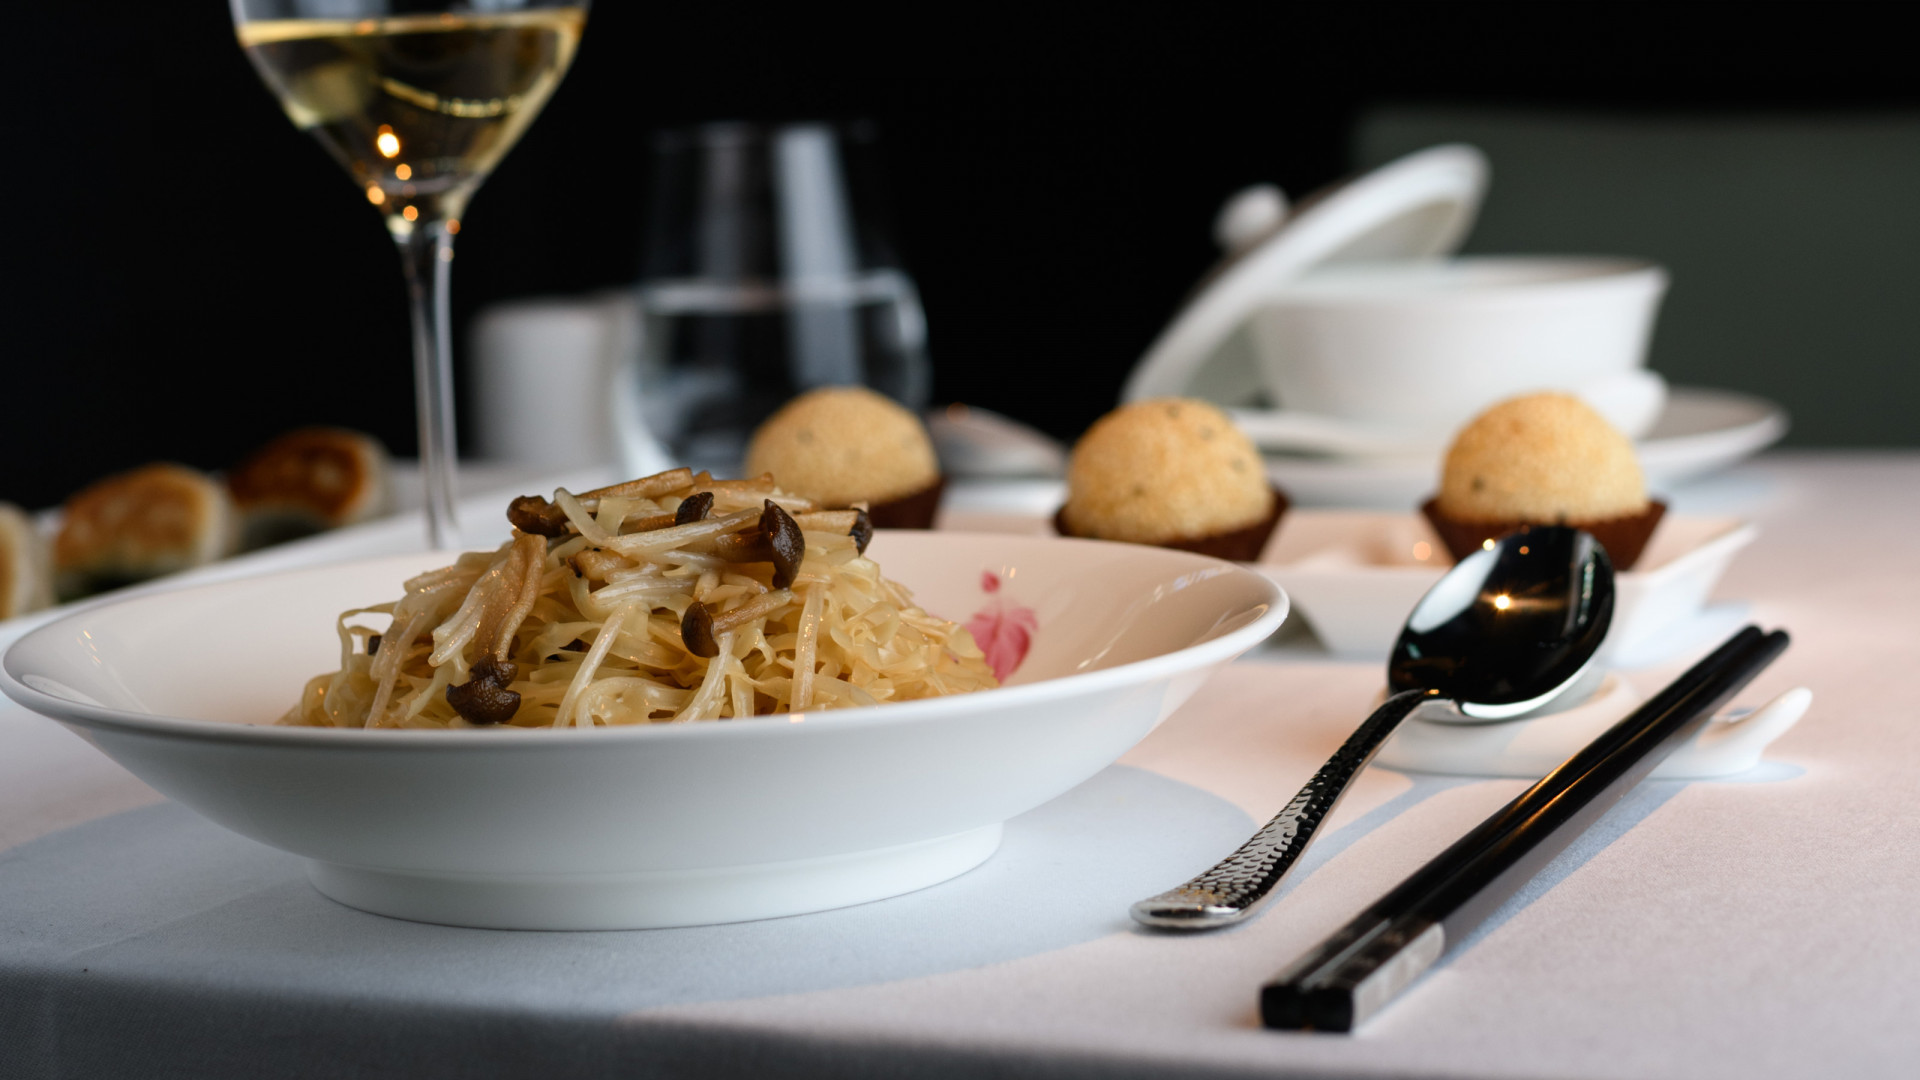 Braised noodles with Matsutake mushroom and truffle oil